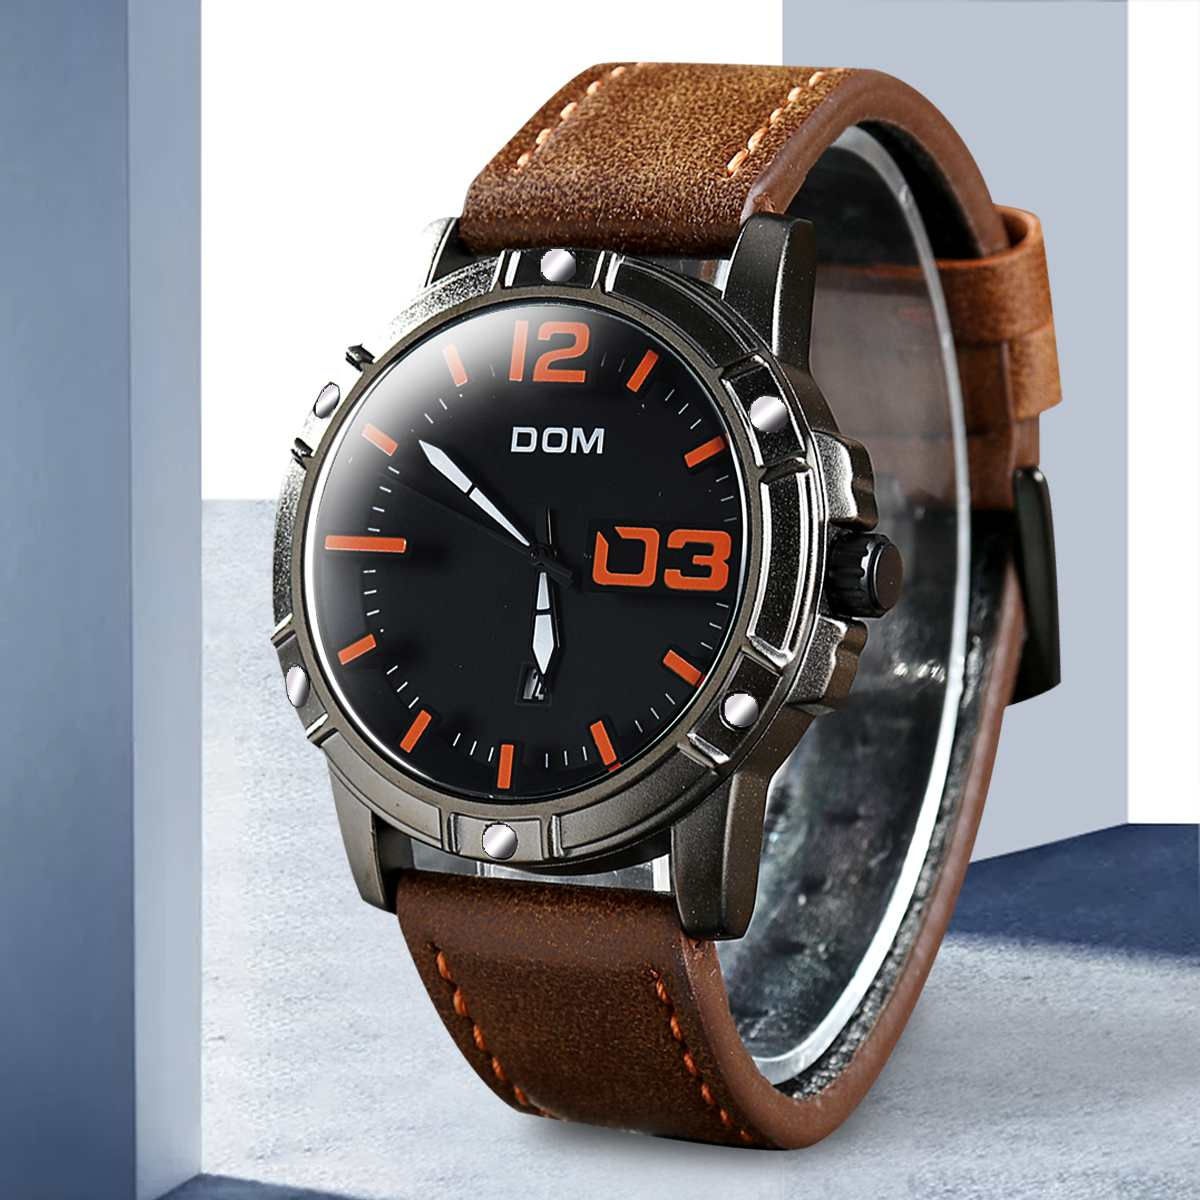 DOM Watch Men Waterproof Luxury Quartz wristwatch clock Mens Watches Leather Sport Business watch Men Gifts M-1218BL-1M5